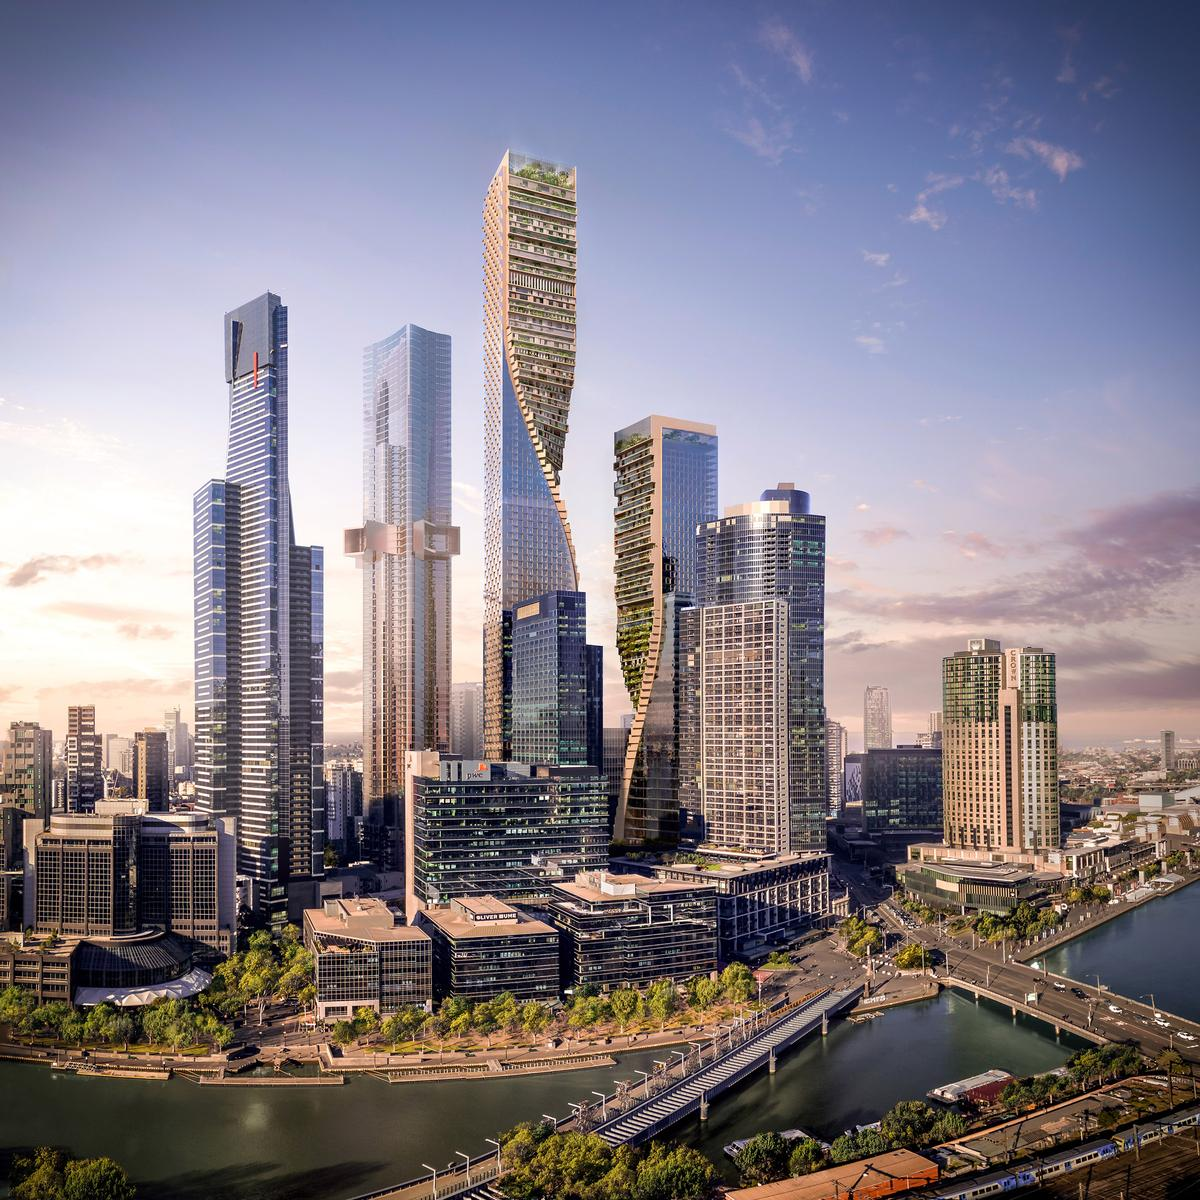 UNStudio's 'Green Spine' wins Melbourne Southbank competition